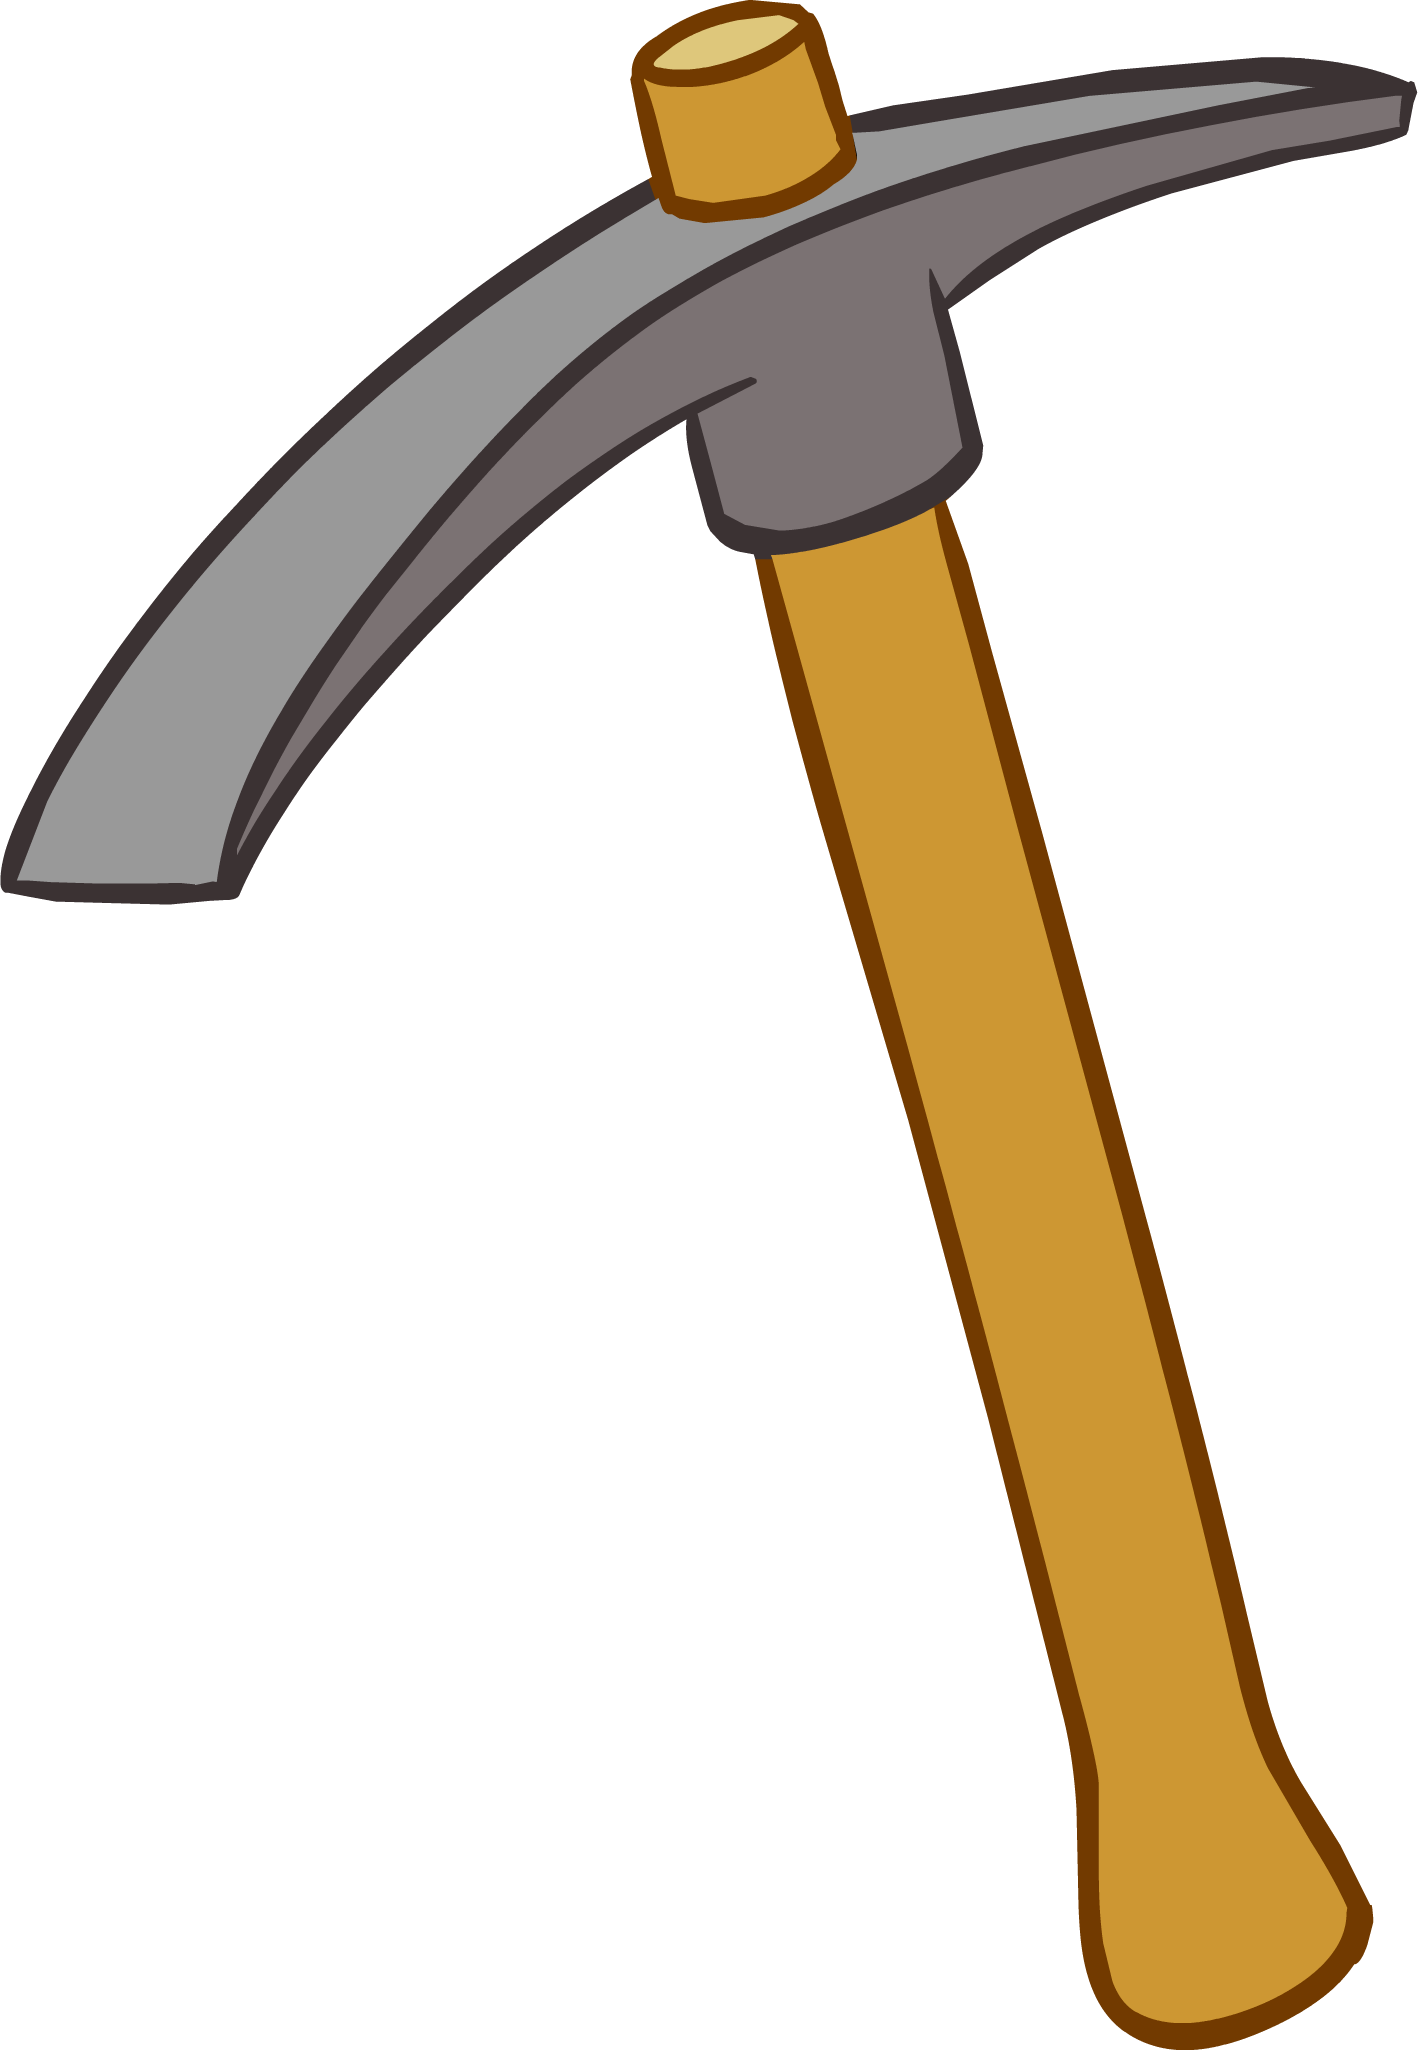 Clipart hammer rock hammer. Image pickaxe icon png